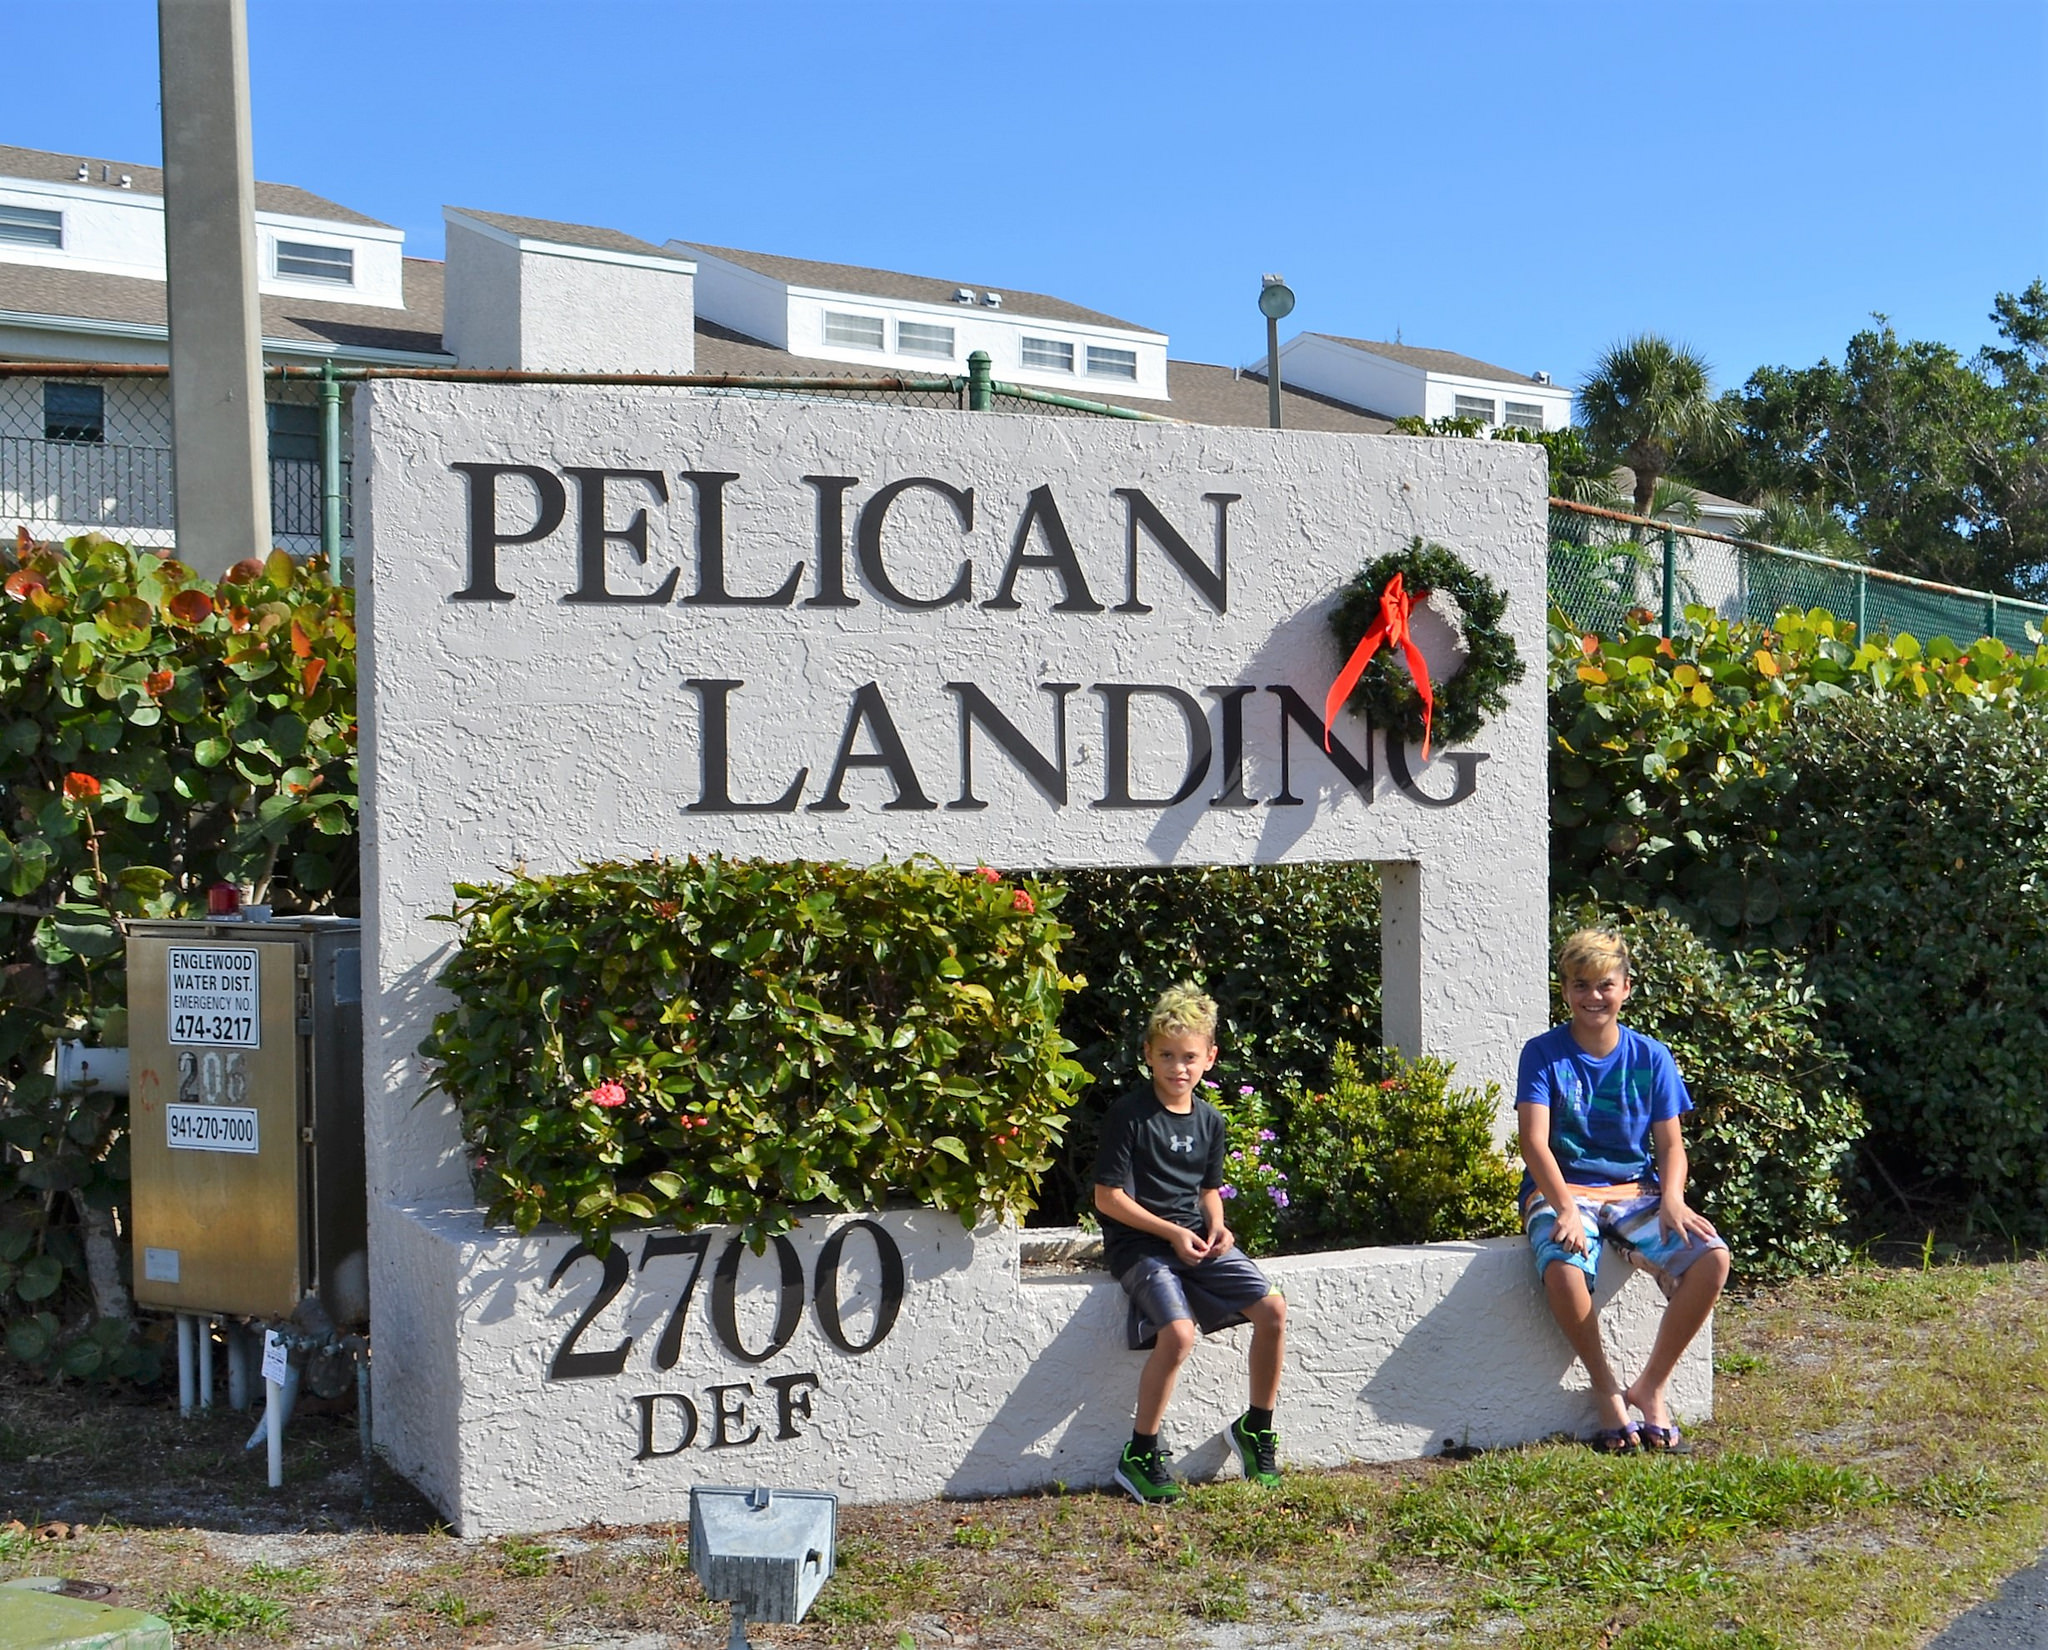 Where to stay in Manasota Key with kids? We recommend renting a condo.